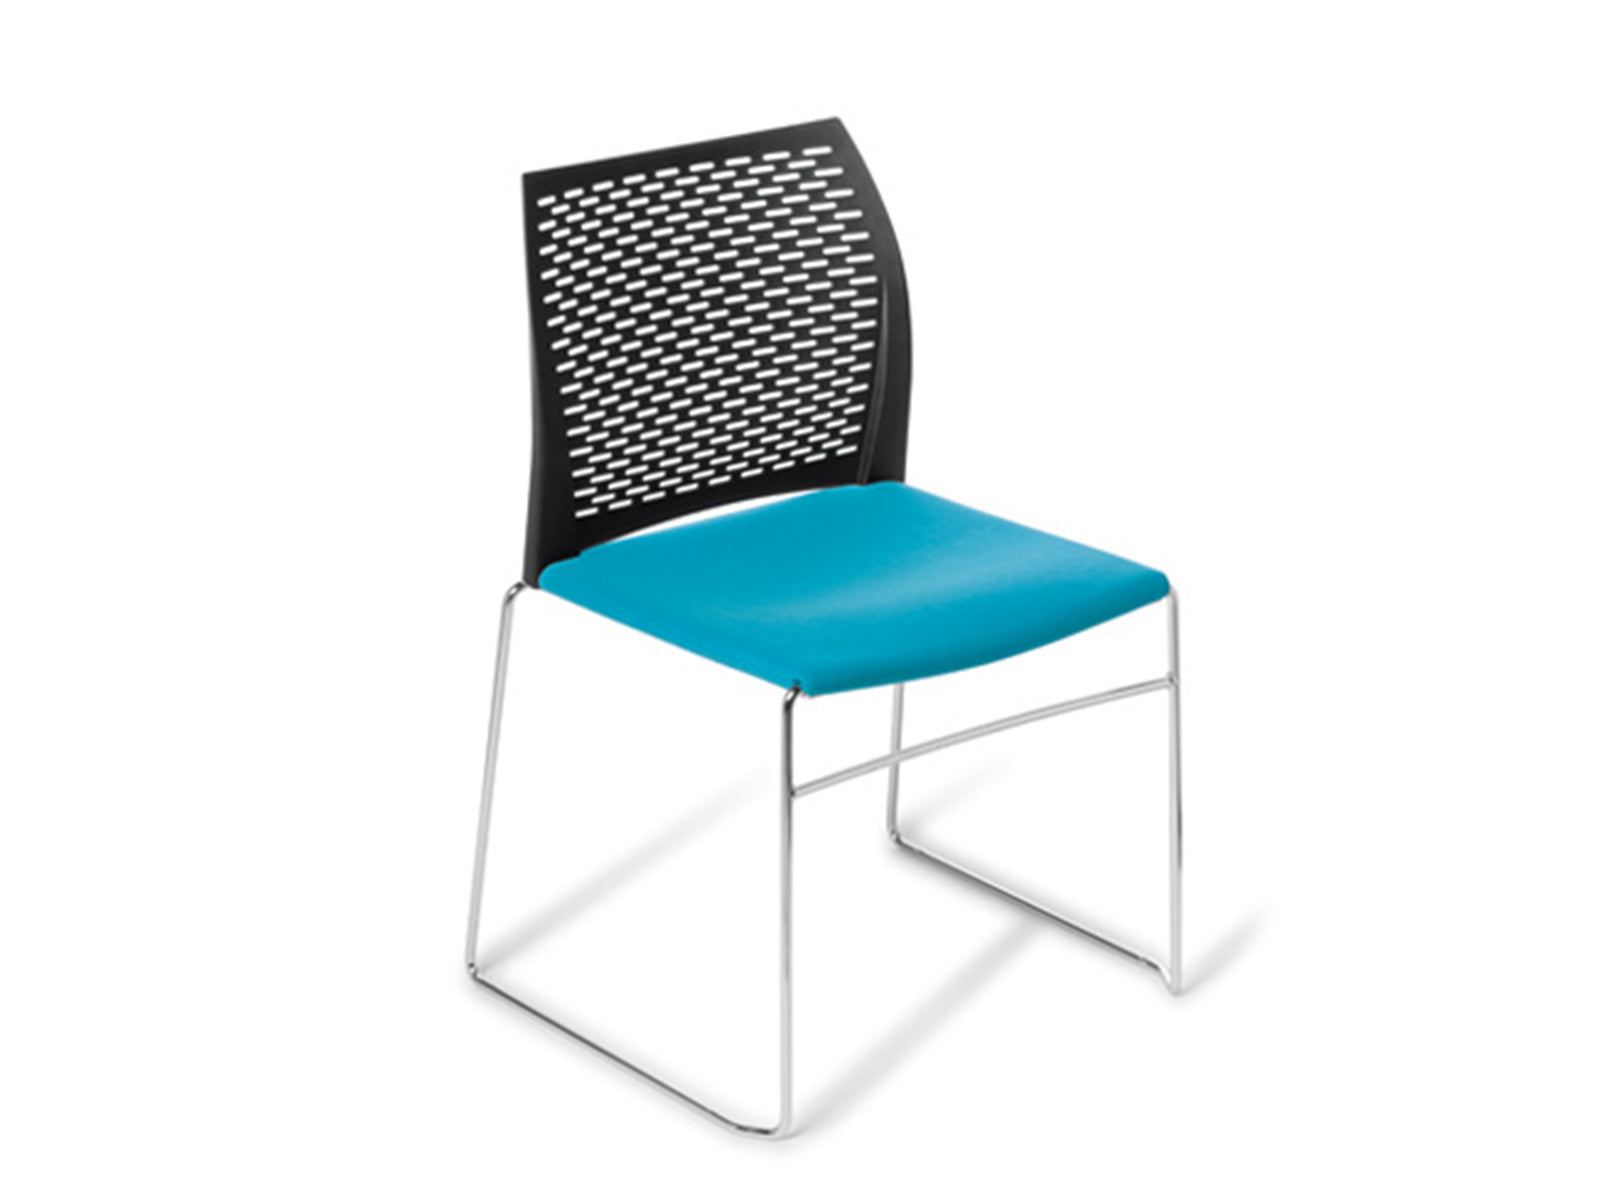 Net Chair Upholstered - Workspace Furniture Home and Office Cafe Chairs